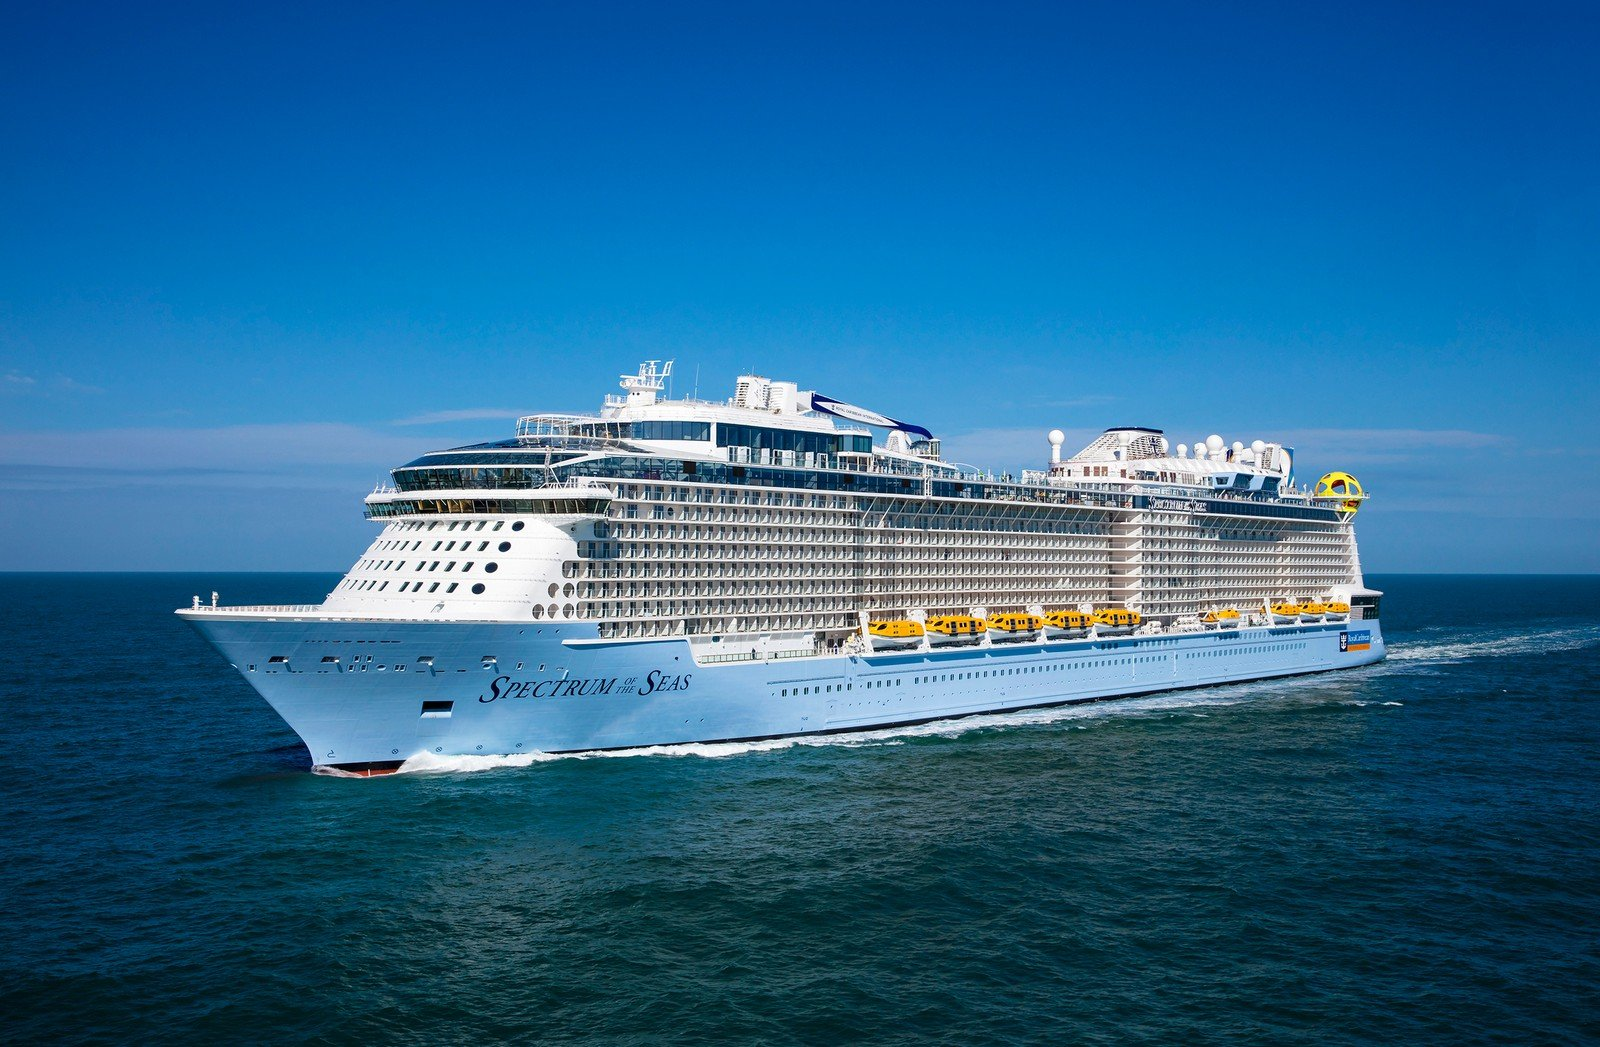 Royal Caribbean adds Spectrum of the Seas to new app